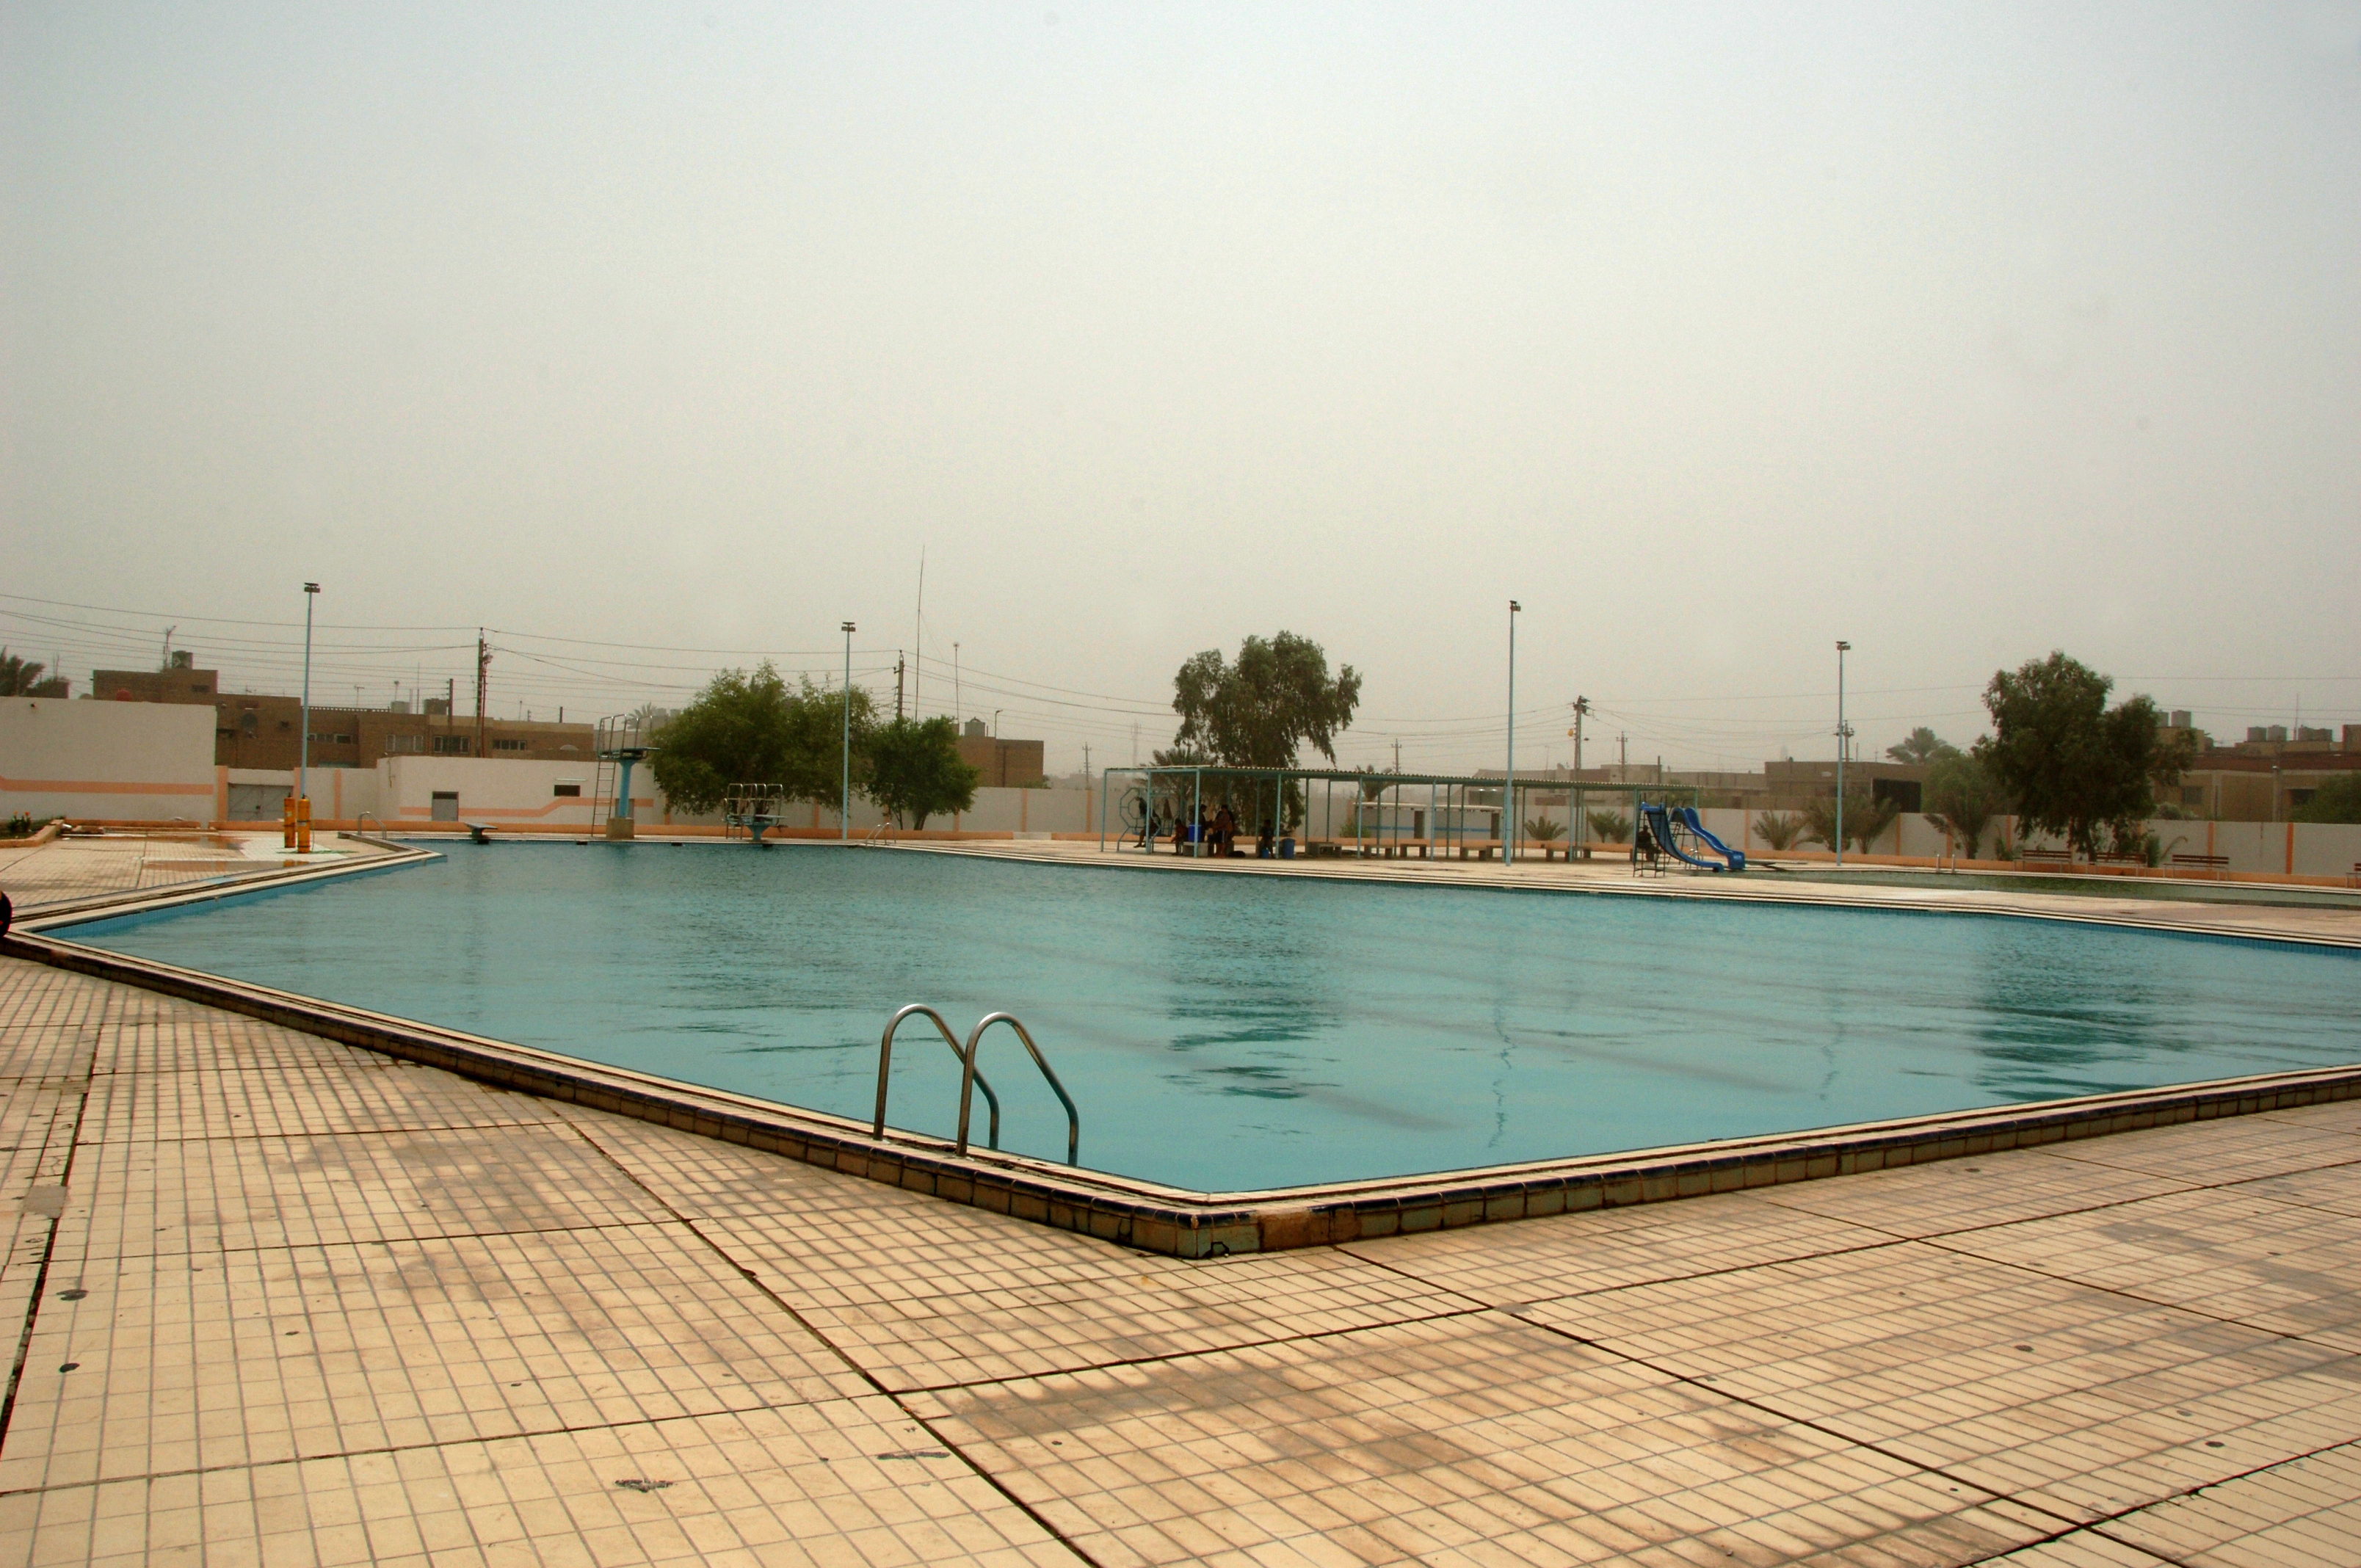 File A Wide View Of One Of The Newly Constructed Pools At The Jadida Public Swimming Pool